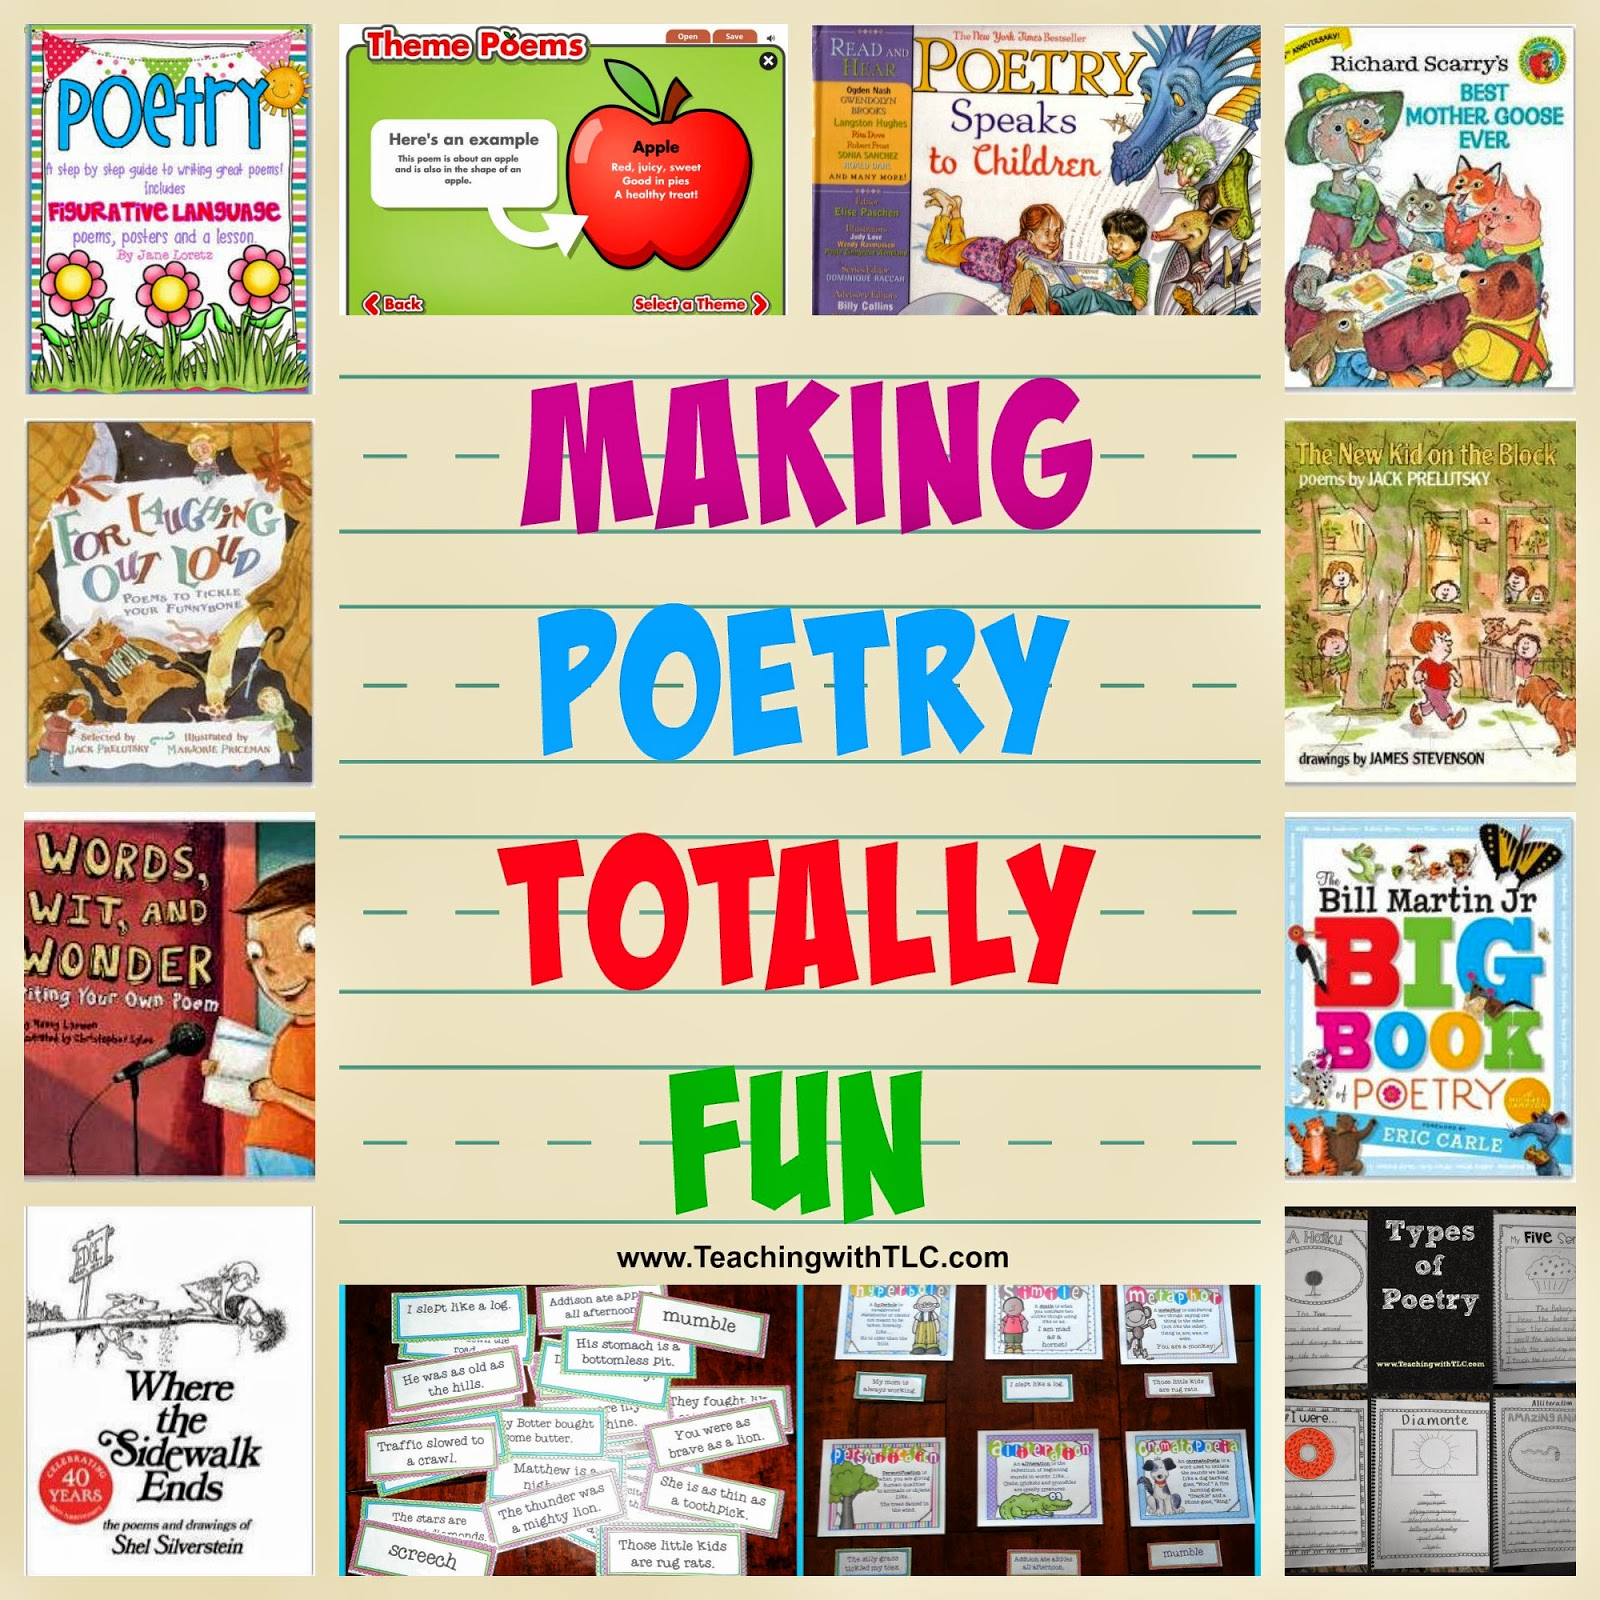 Poetry can be so much fun my kids and i enjoy reading poetry and we